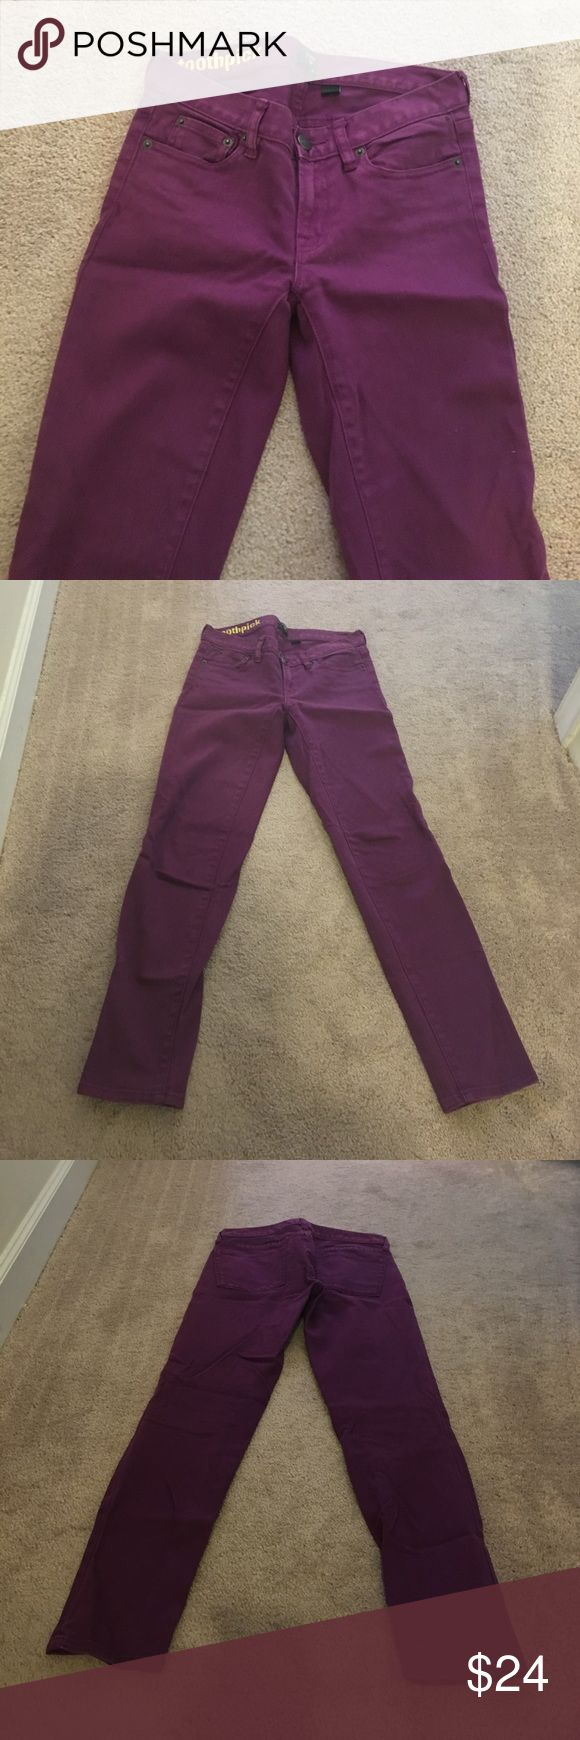 "Purple toothpick J Crew jeans Purple skinny jeans from J Crew toothpick line. 28"" inseam. Worn only a few times in great condition. J. Crew Jeans Skinny"